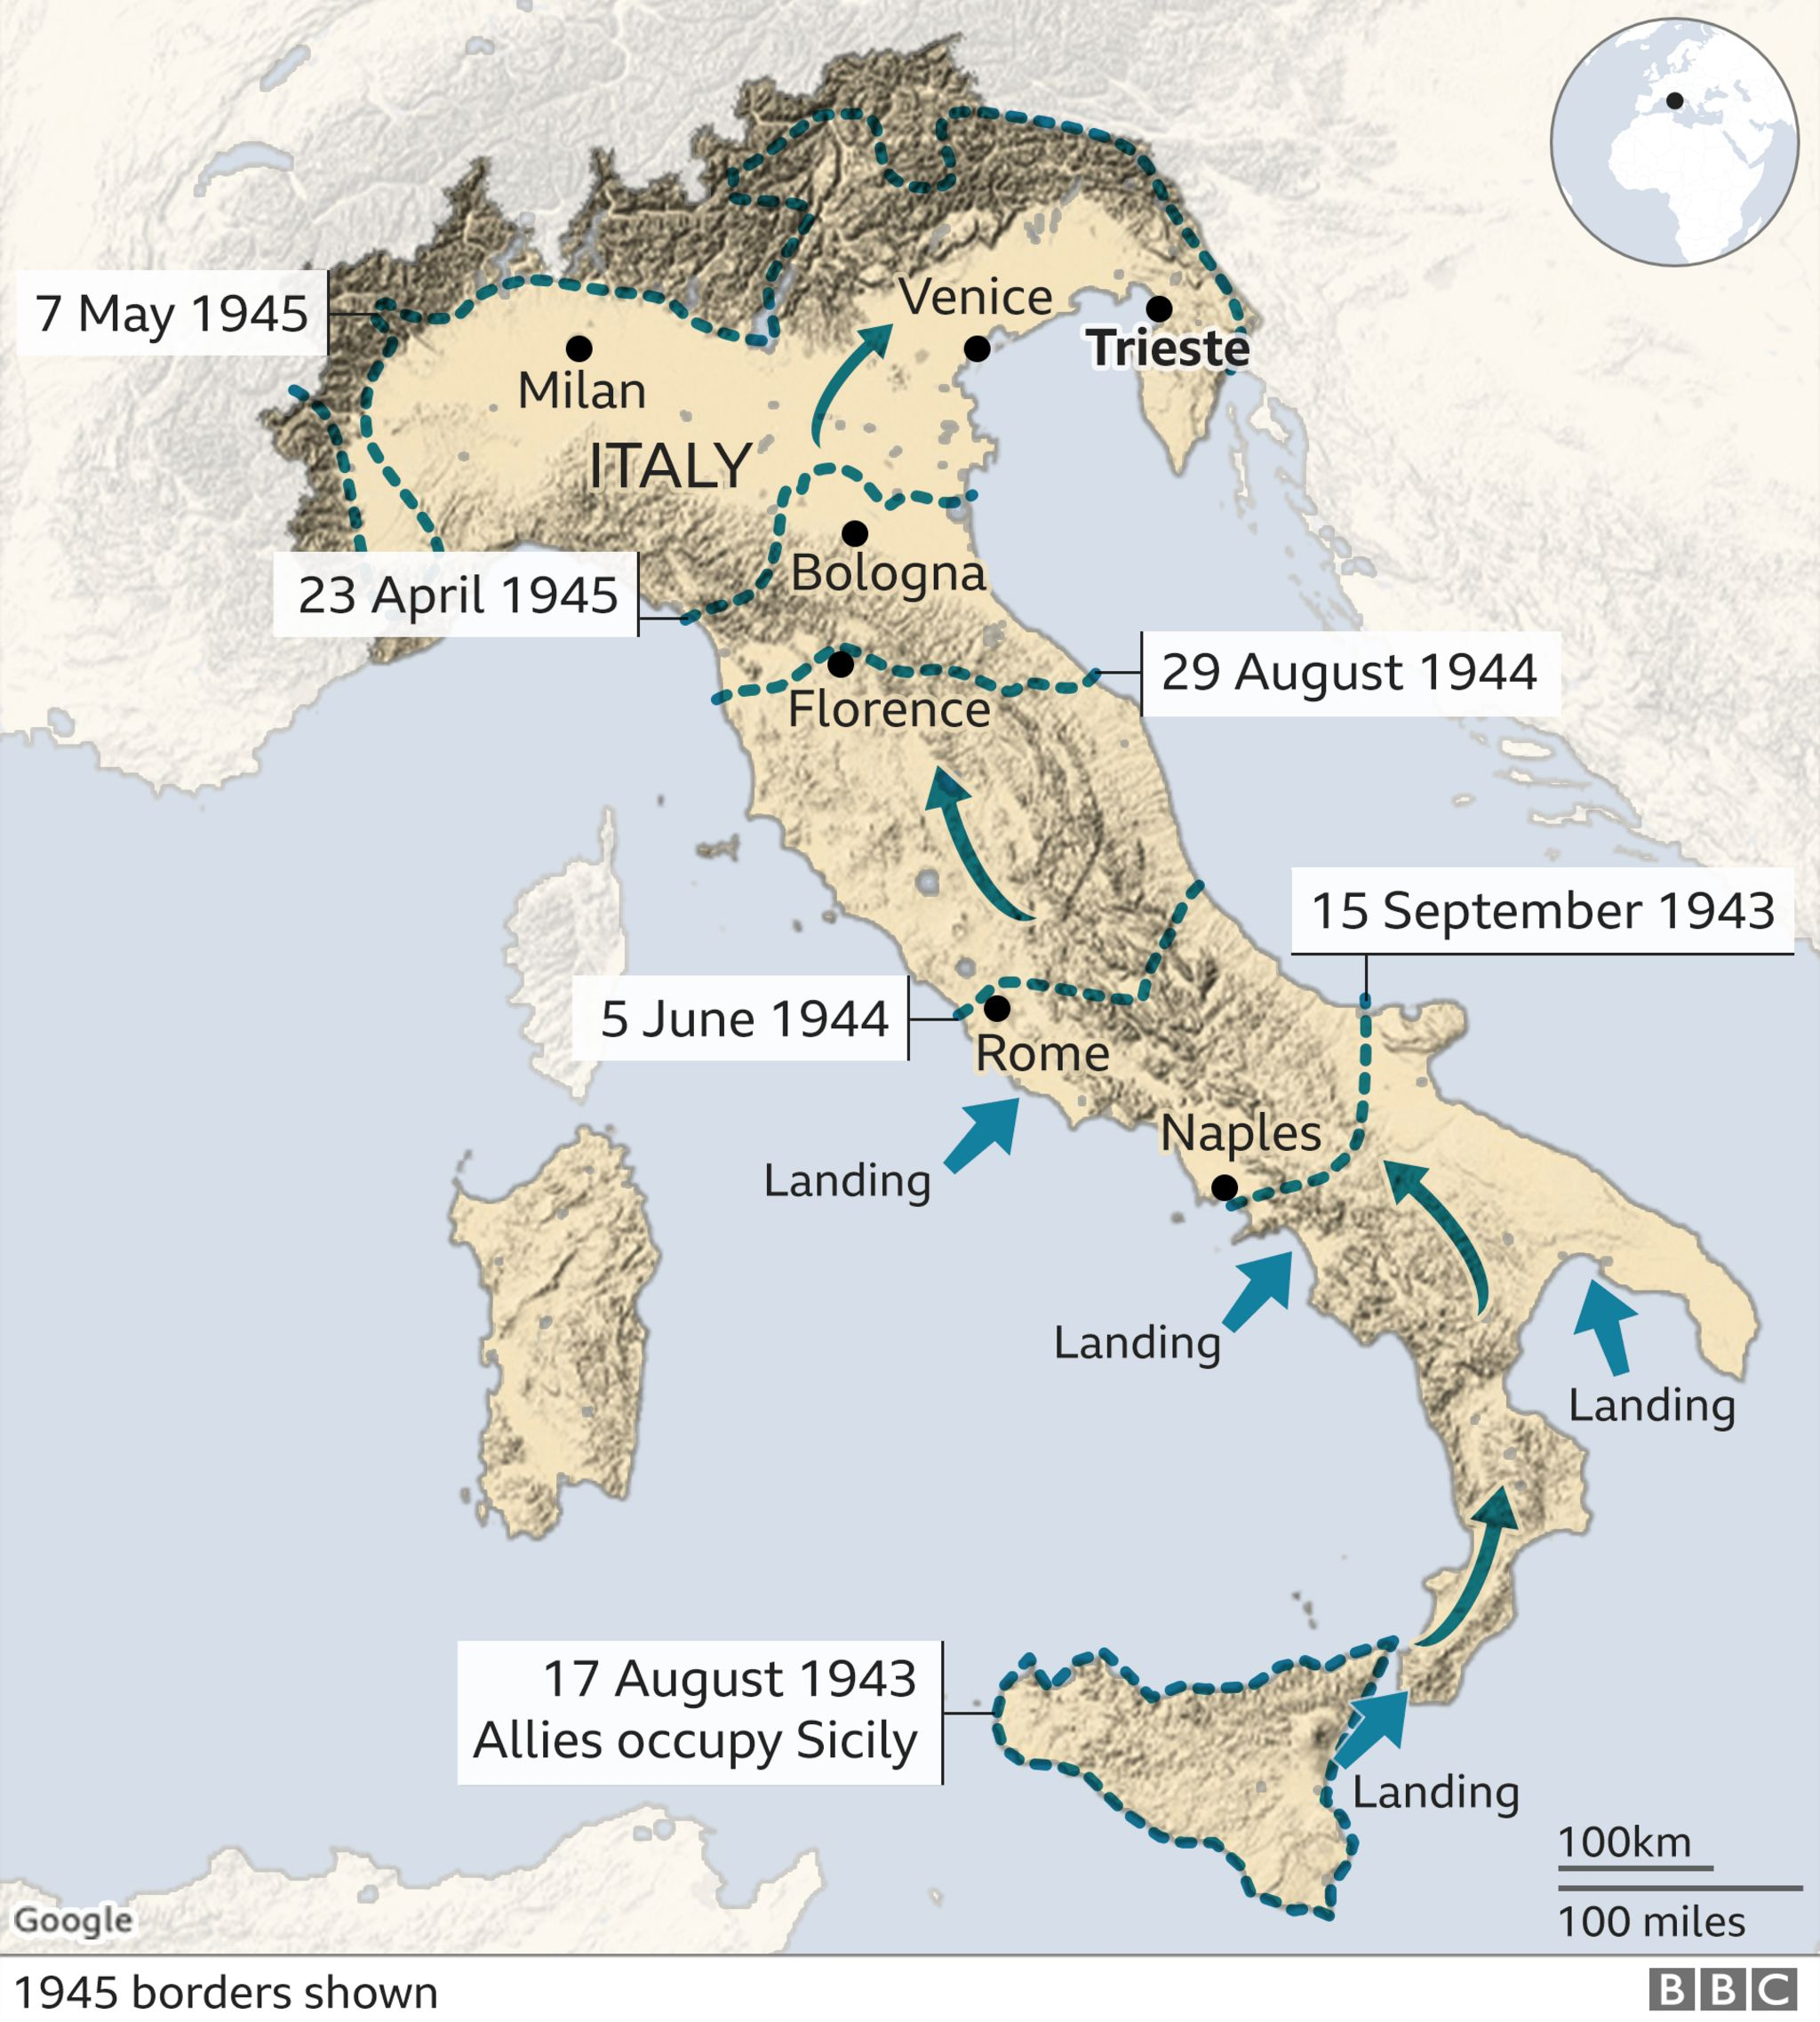 Map of Italy showing progress of Allies from 1943 to 1945